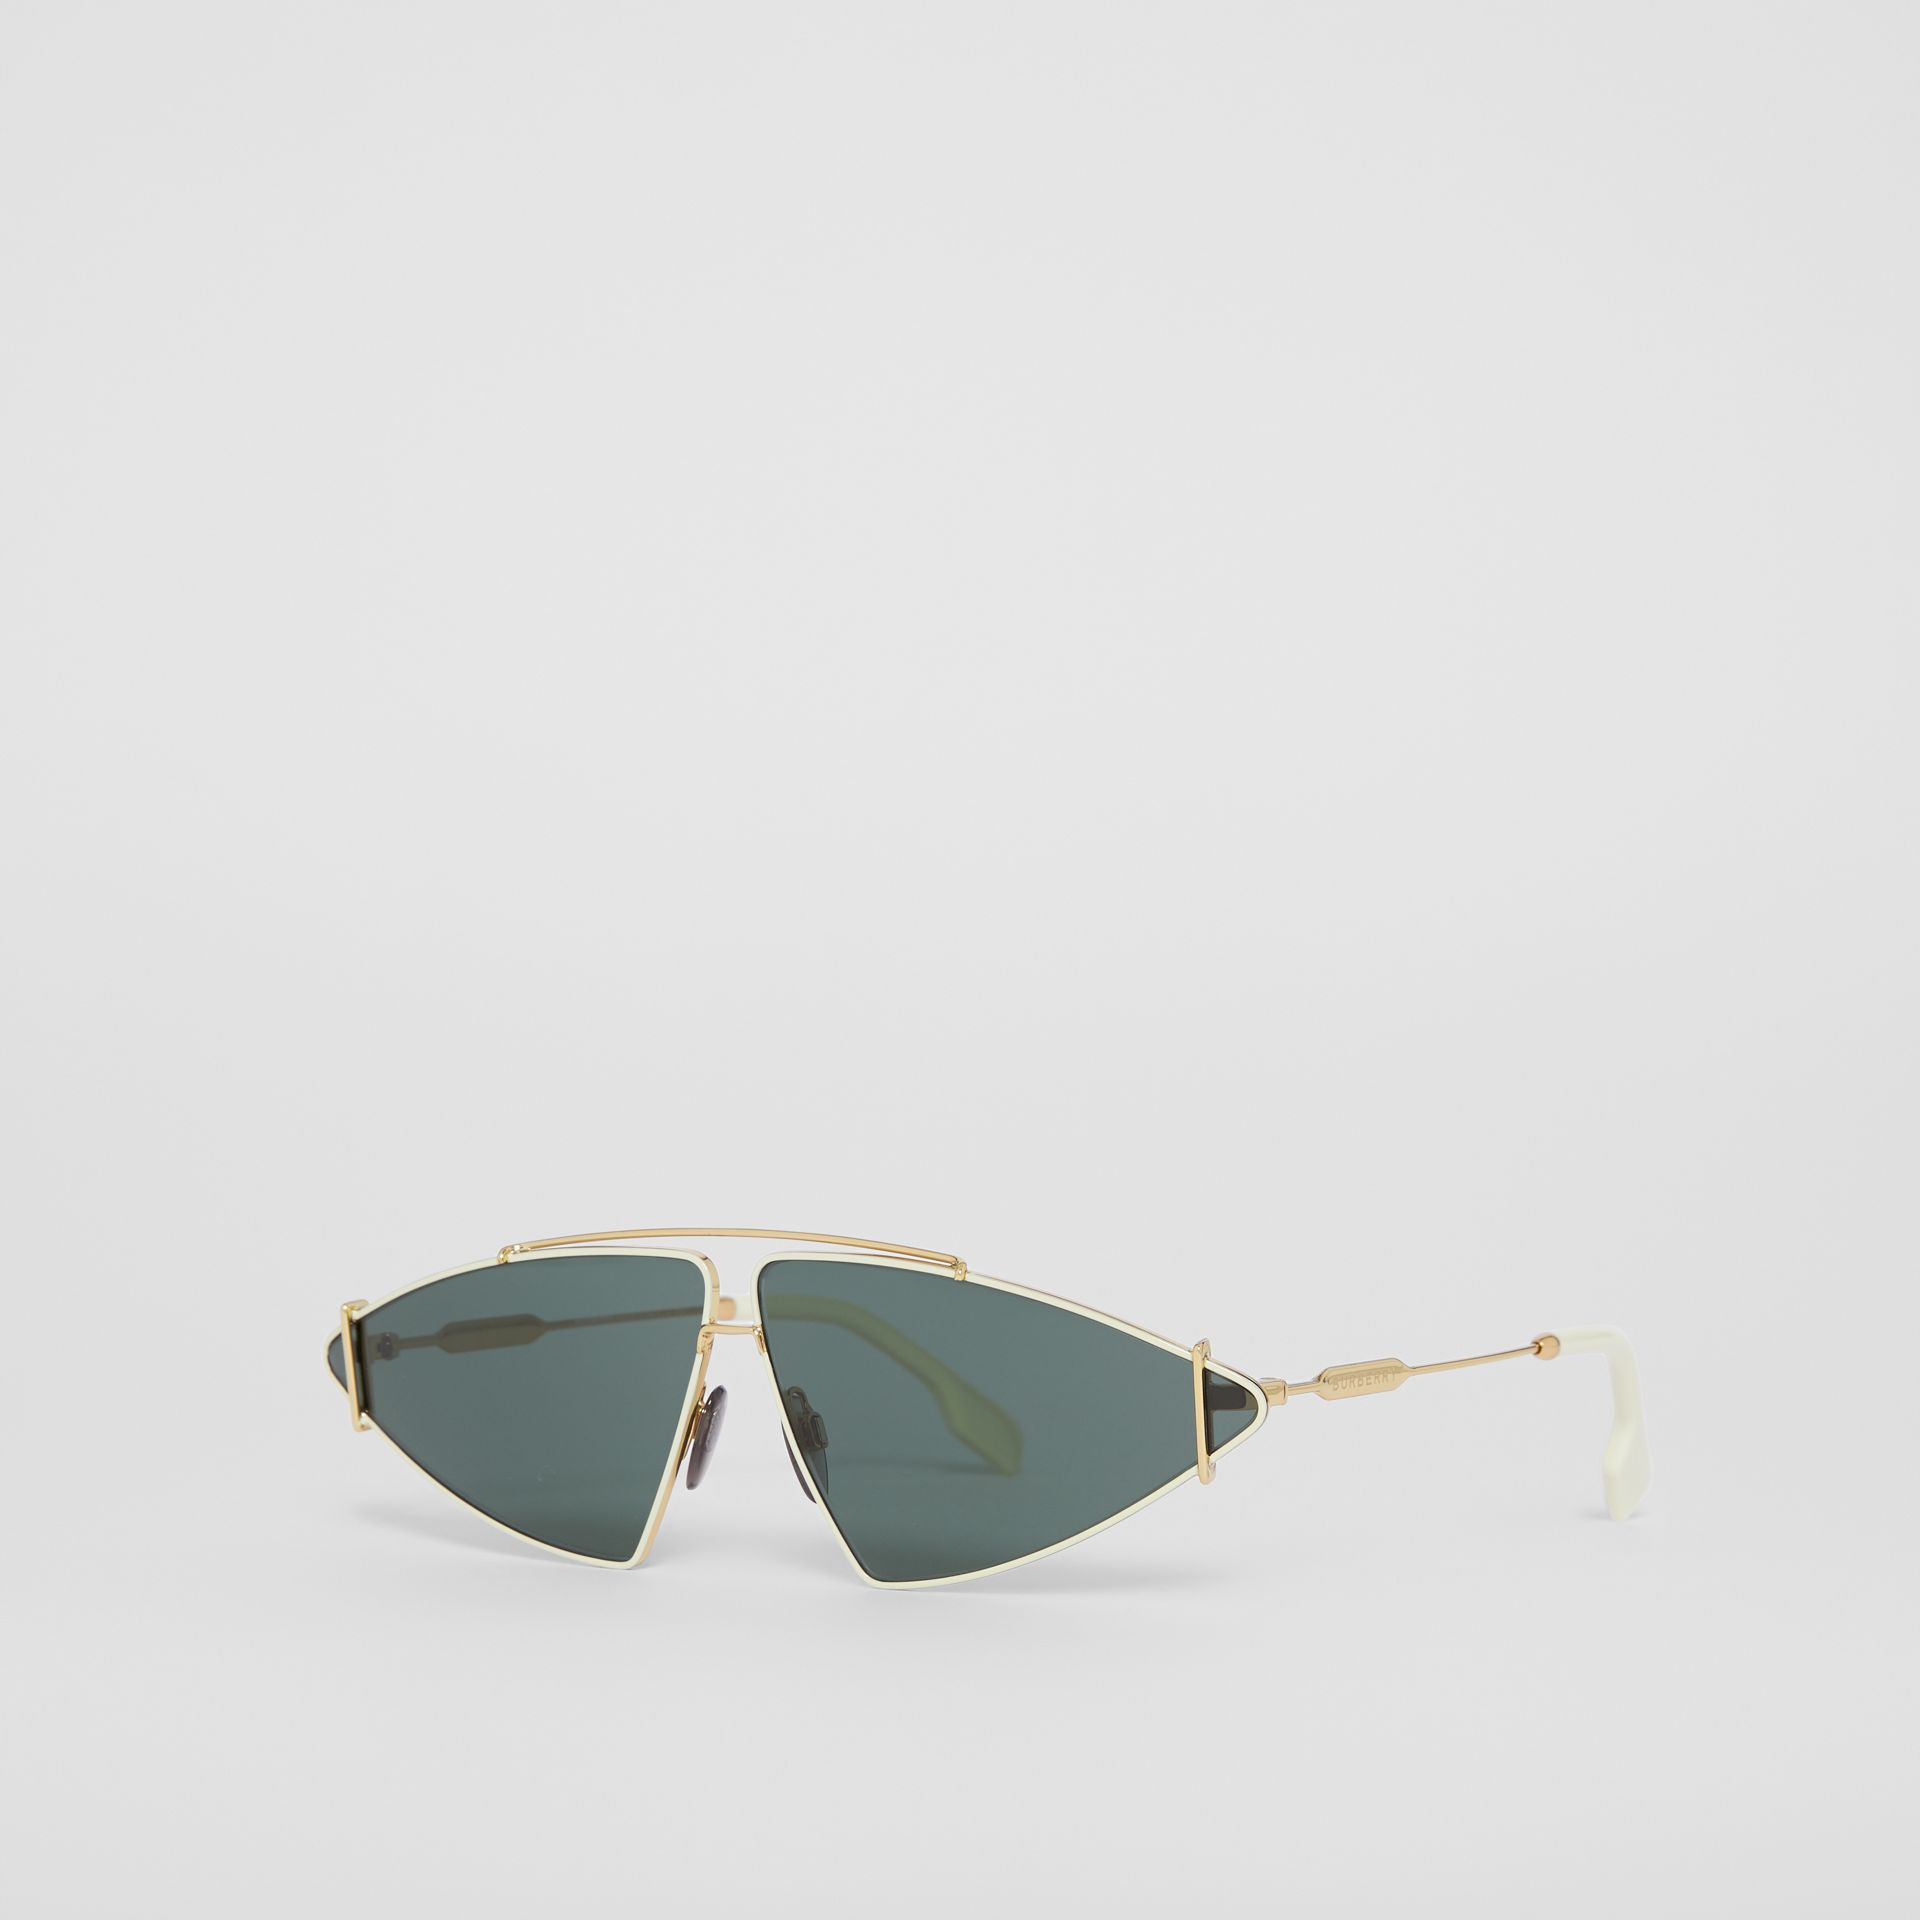 Gold-plated Triangular Frame Sunglasses in Pistachio - Women | Burberry Hong Kong - gallery image 5